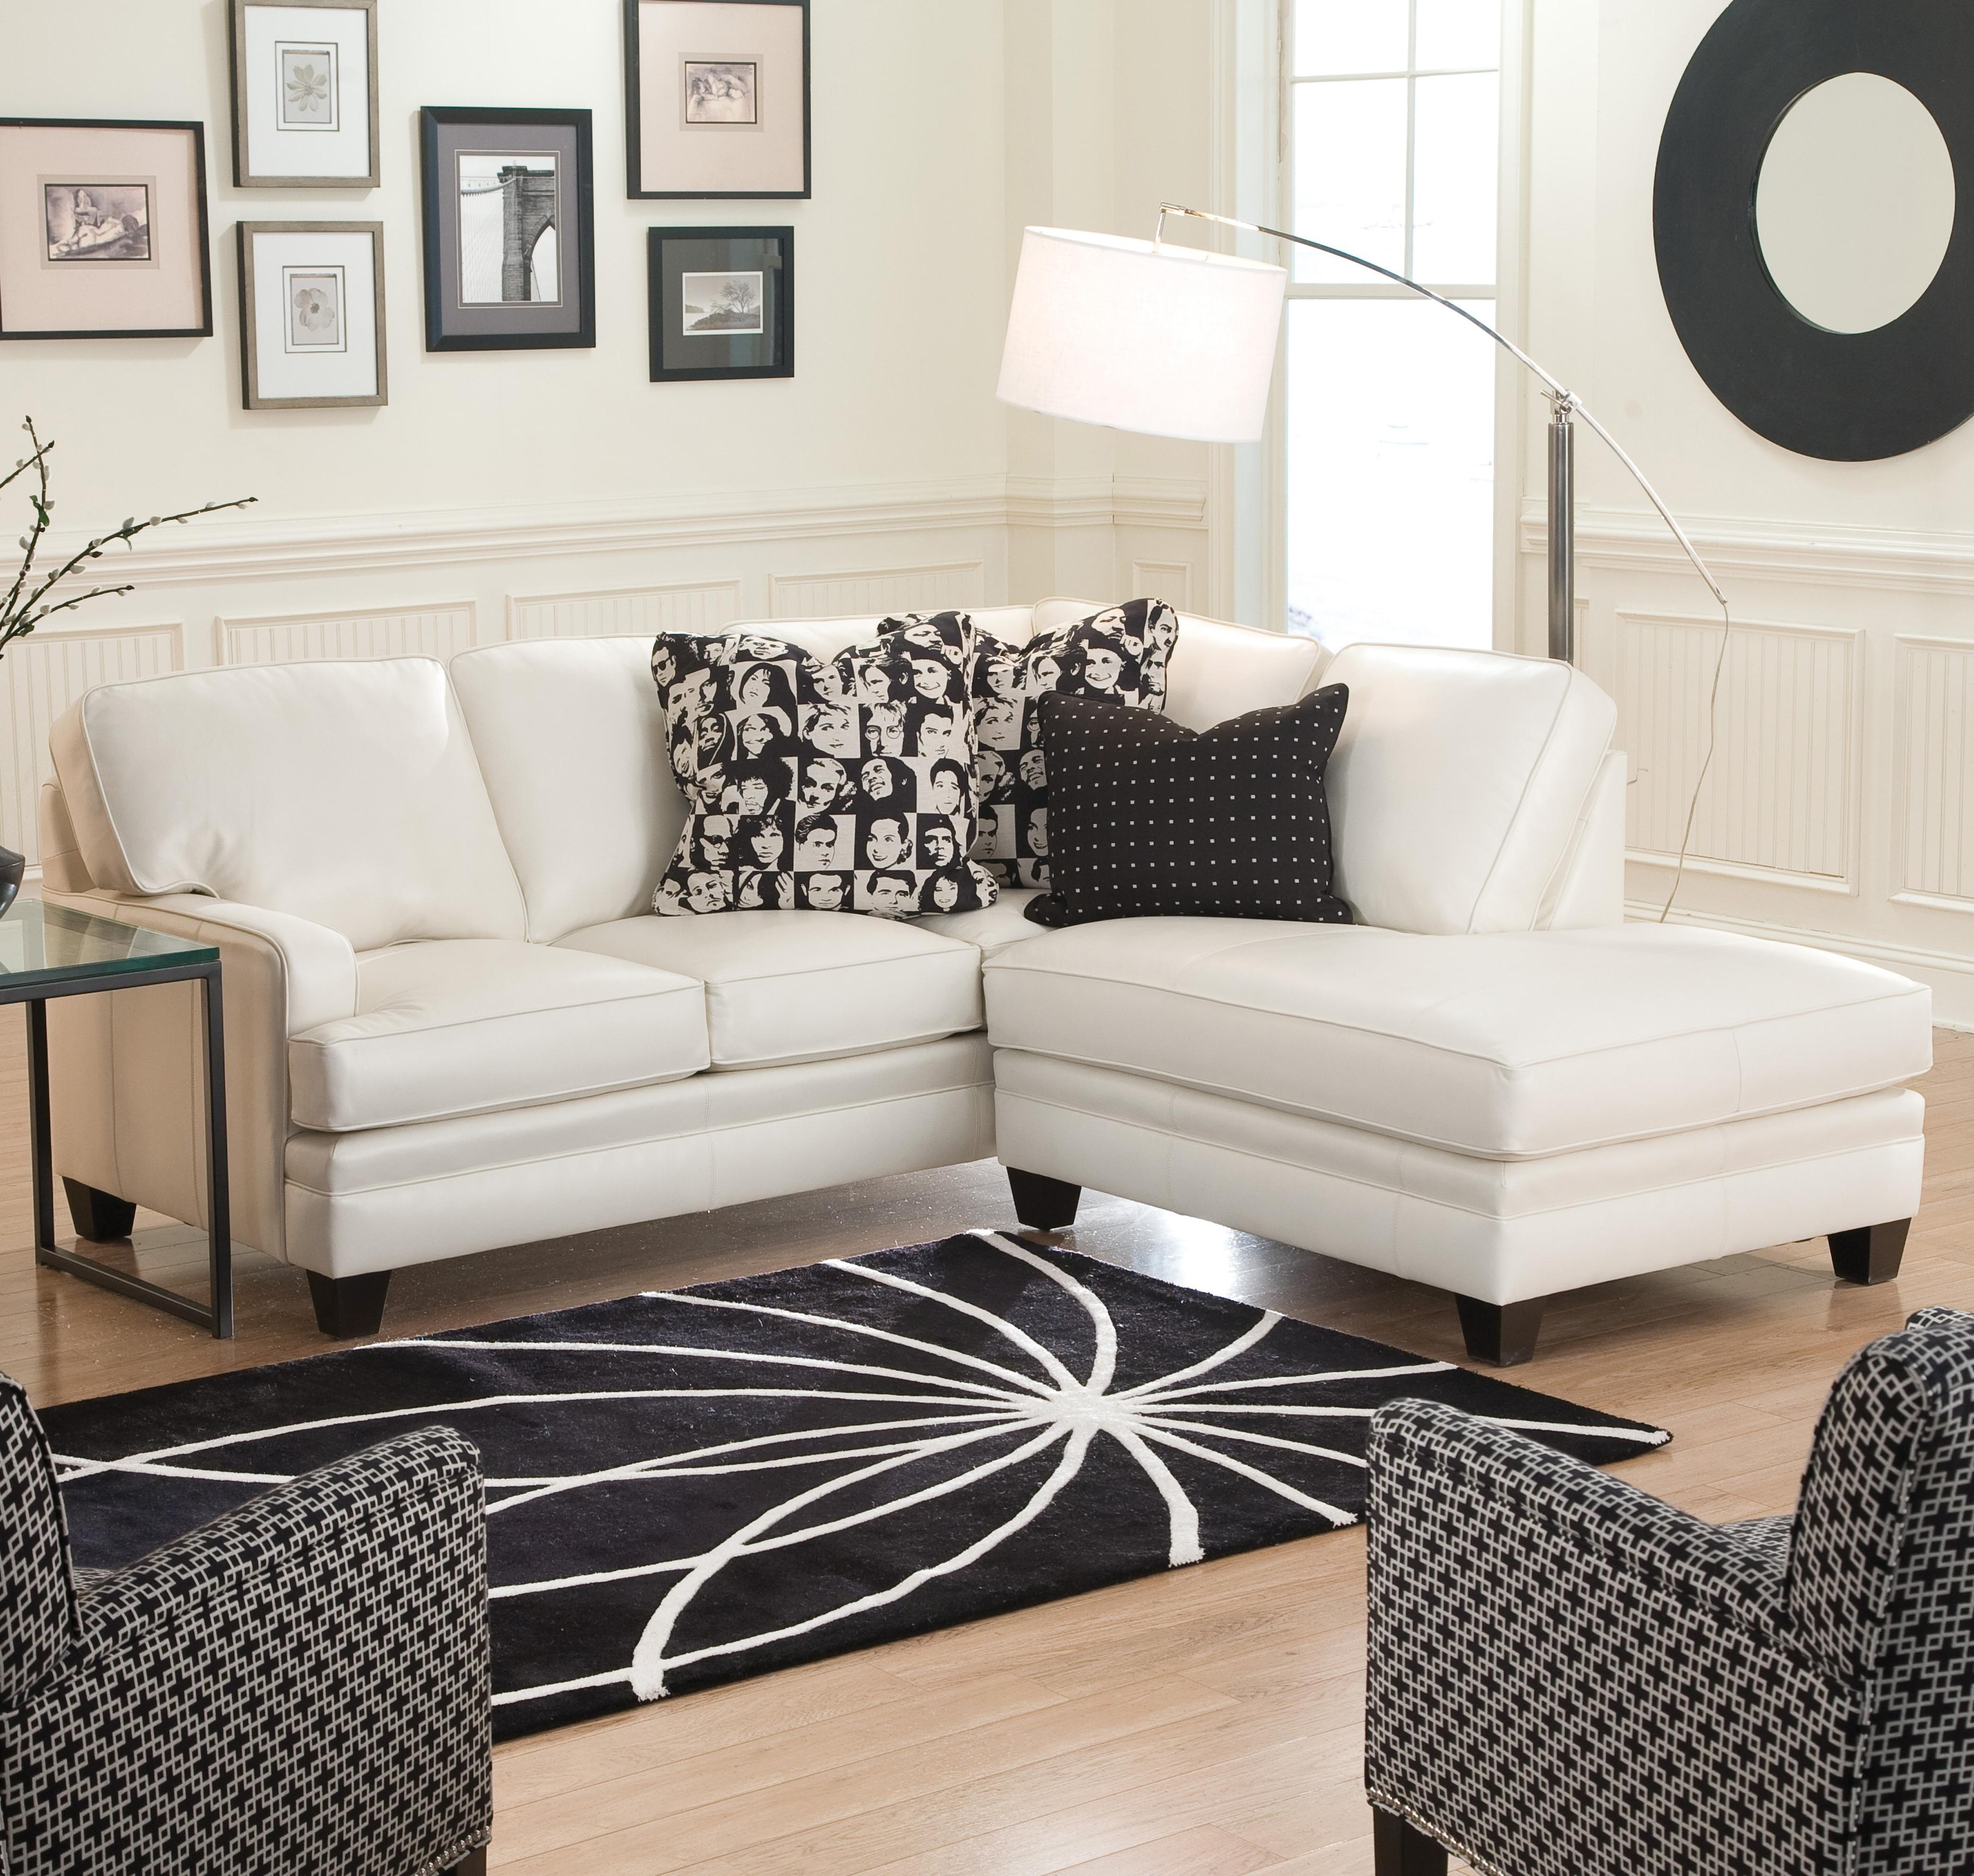 Small Sectional Sofa With Contemporary Looksmith Brothers For Trendy Lancaster Pa Sectional Sofas (View 14 of 20)